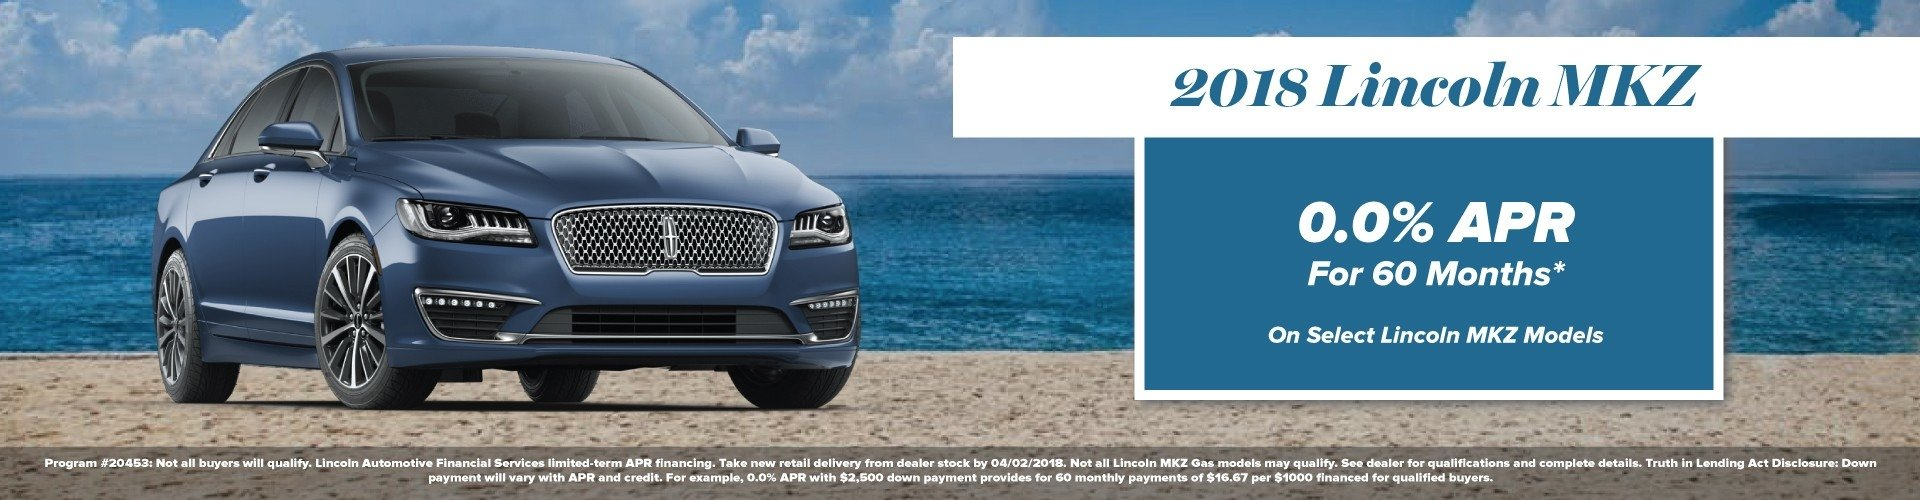 2018 Lincoln MKZ Incentives at Bozard Lincoln of St Augustine